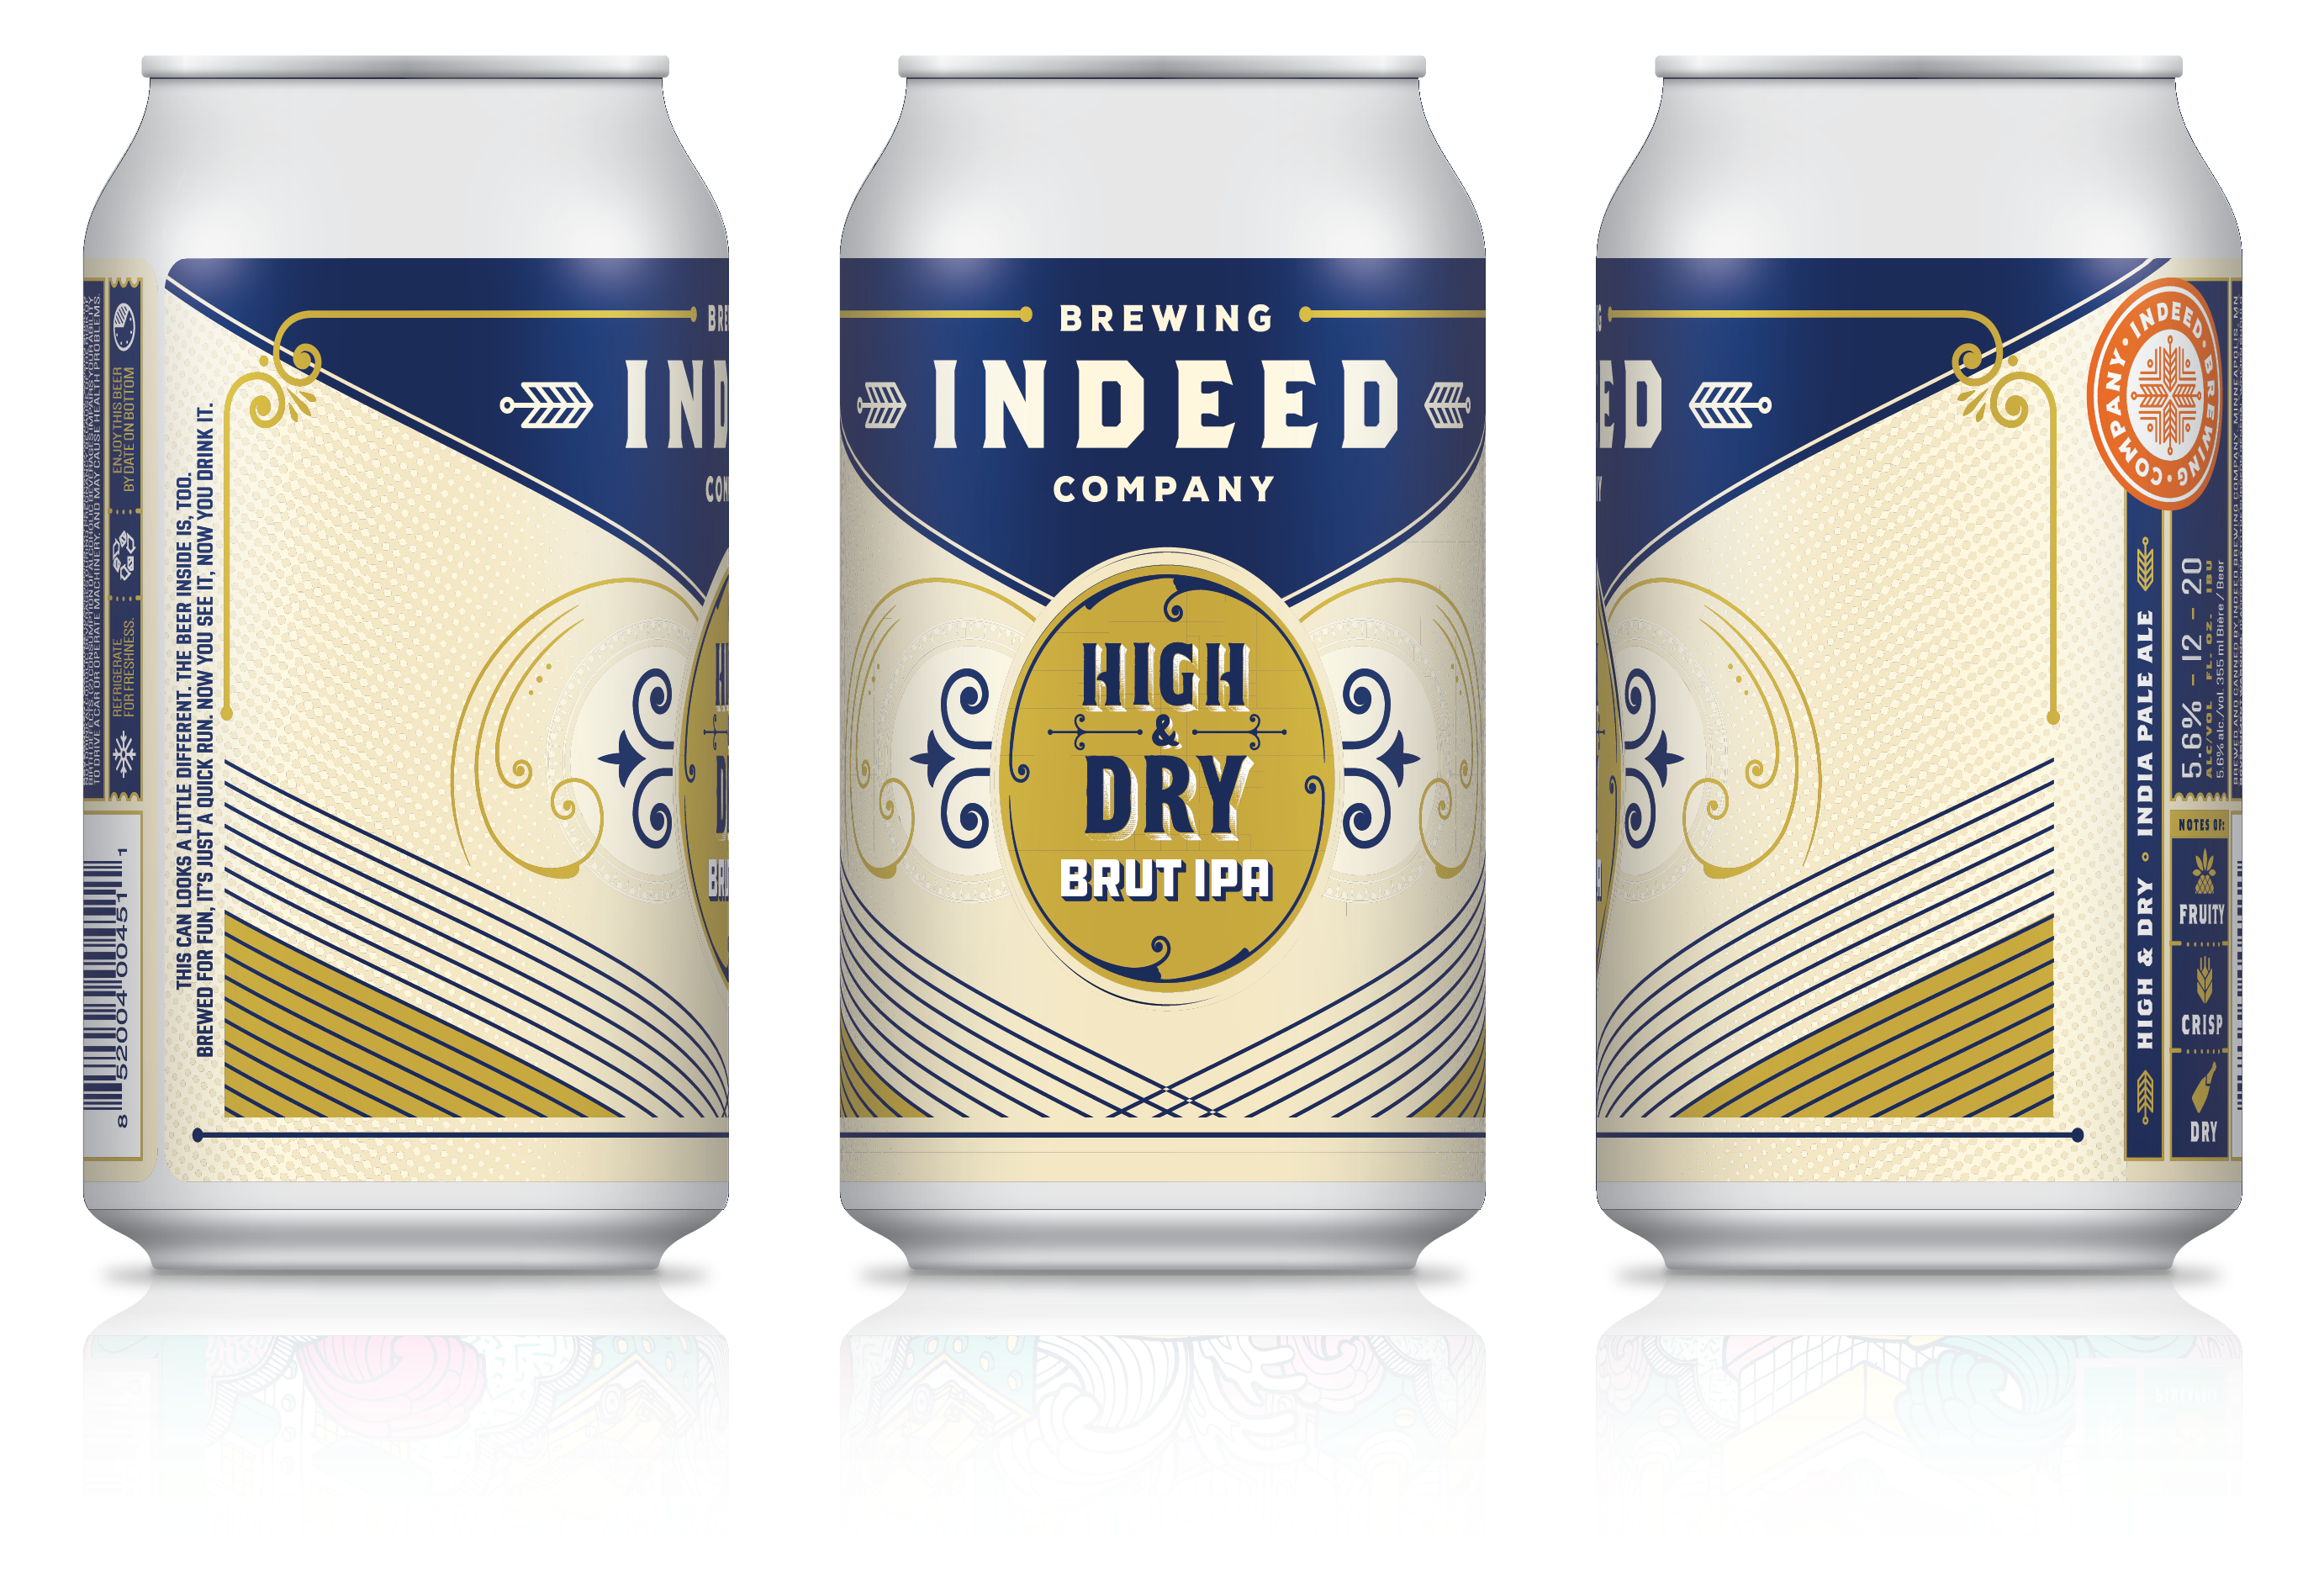 Indeed Brewing Company Announces Release of High & Dry Brut IPA